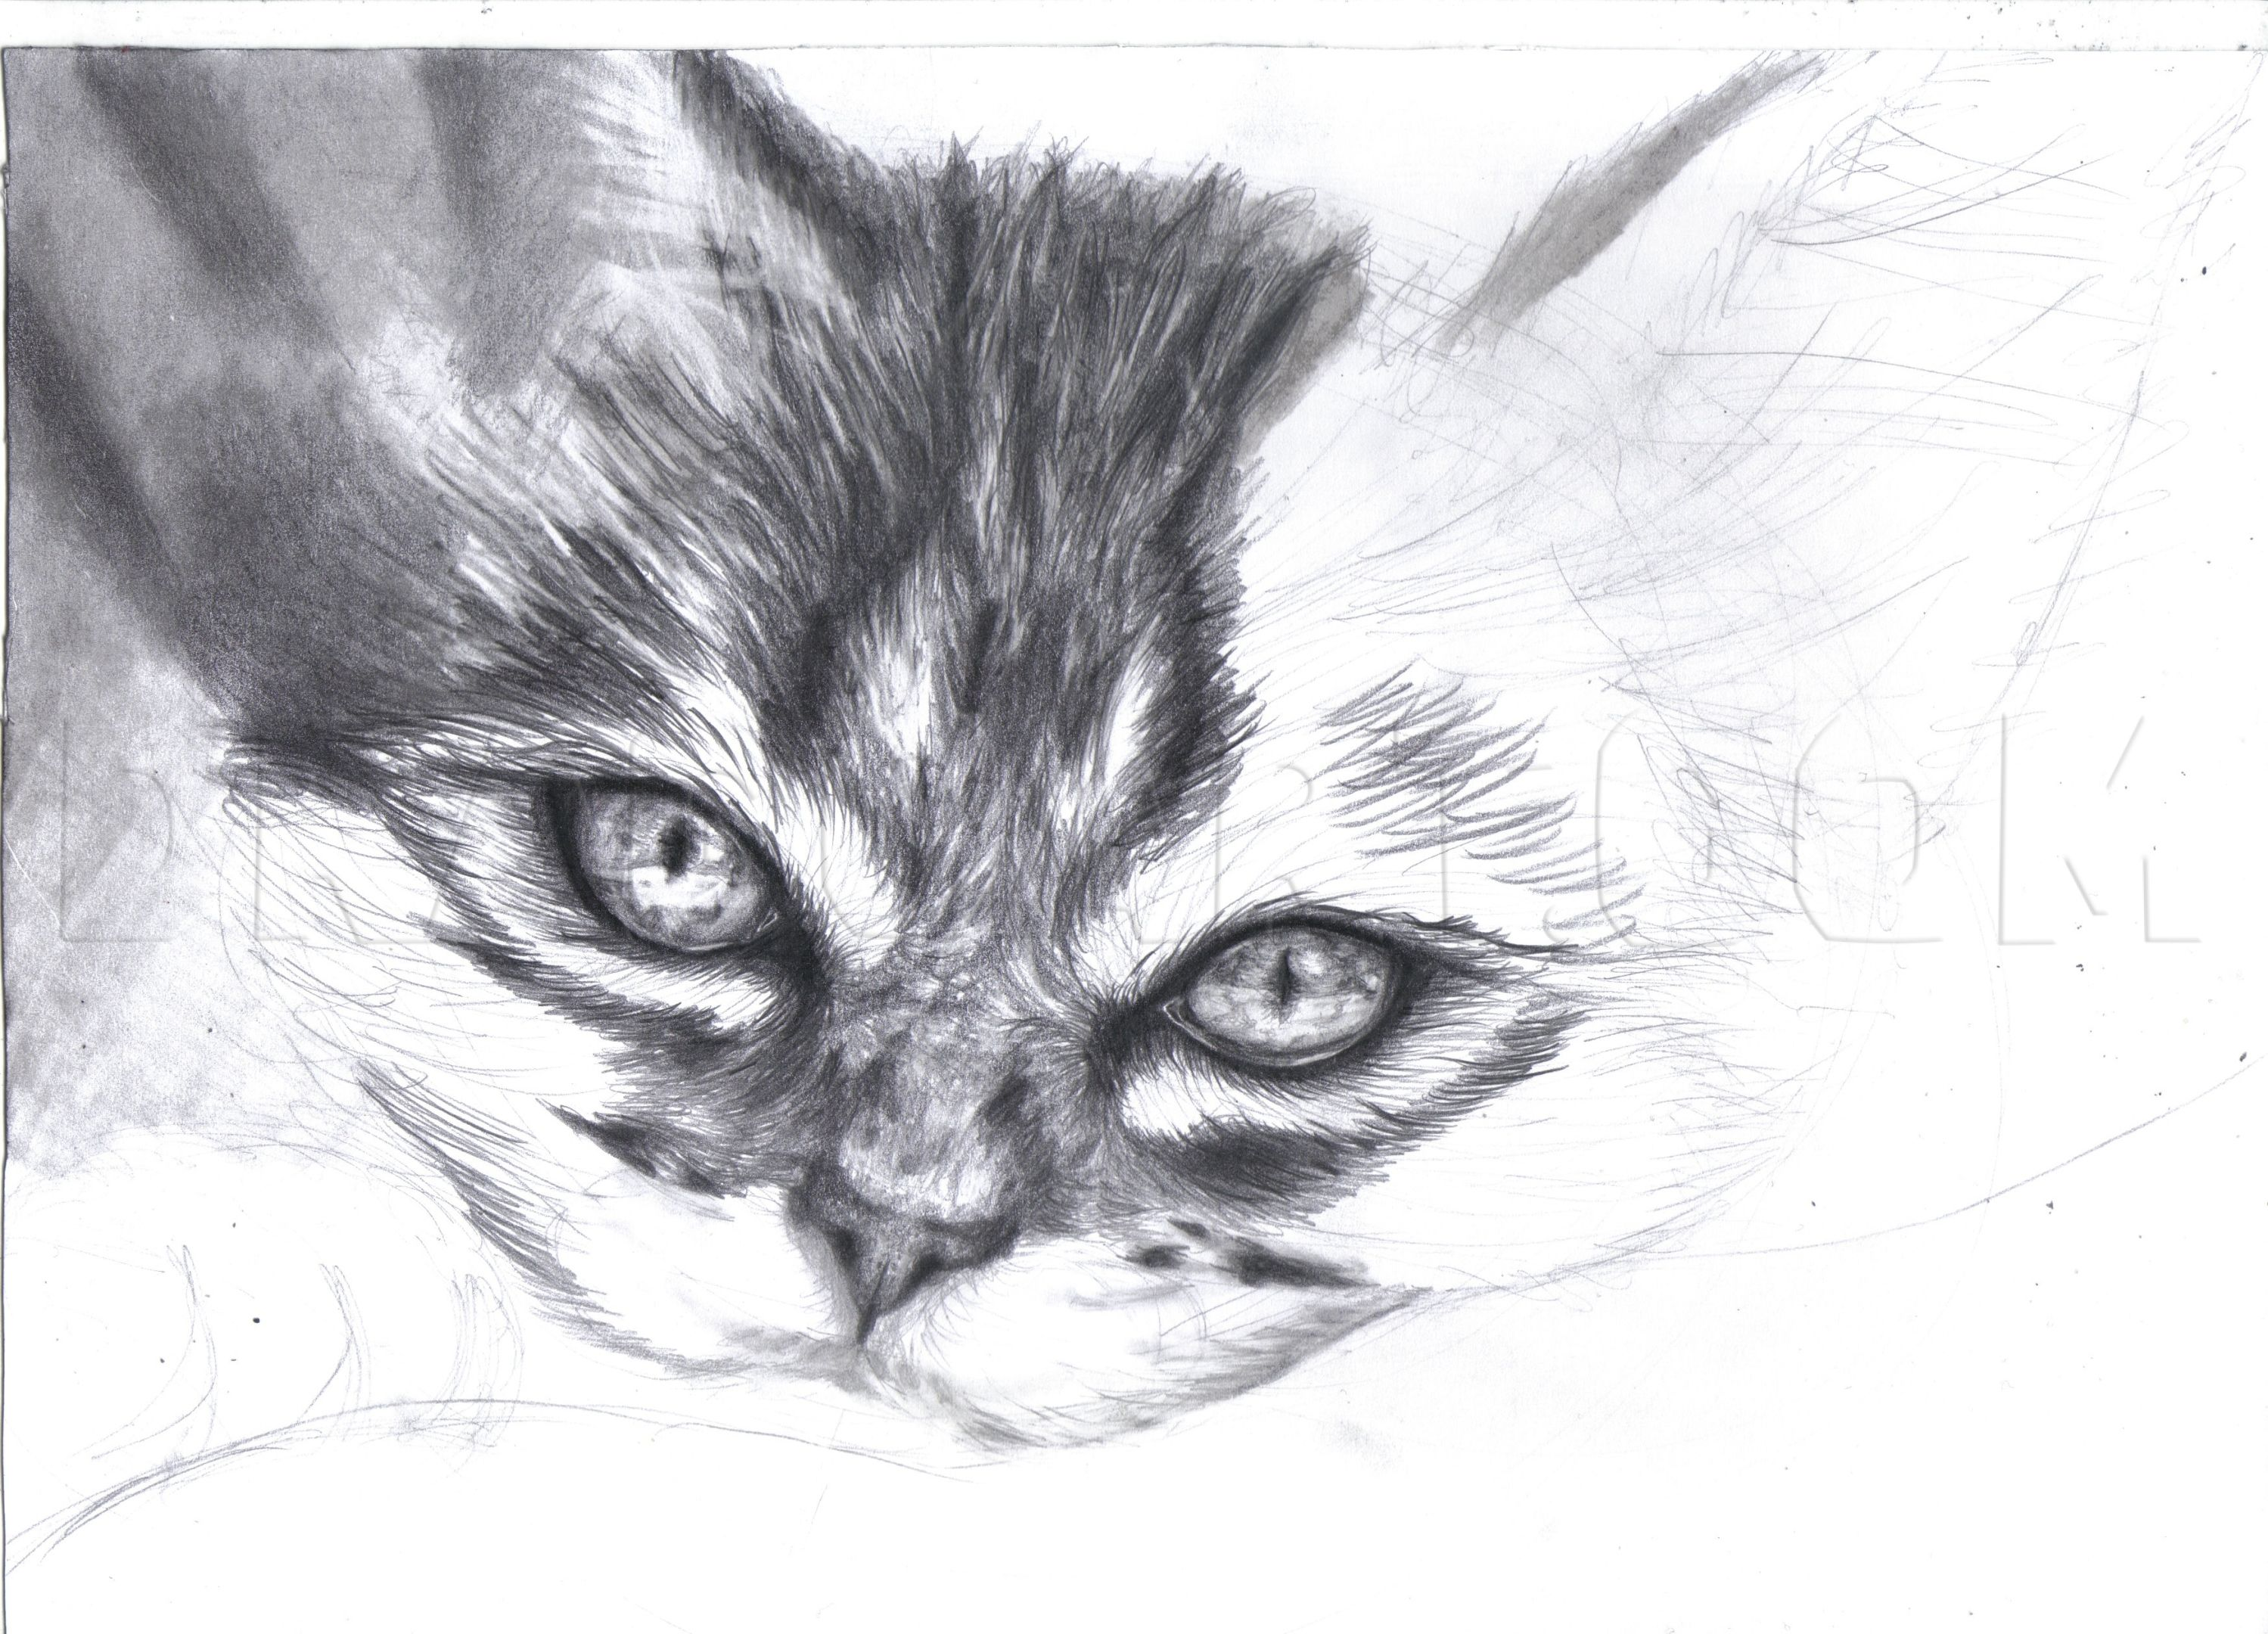 How To Draw A Realistic Kitten Cute Kitten Step By Step Drawing Guide By Duskeyes969 Dragoart Com In 2020 Kittens Cutest Cat Sketch Realistic Animal Drawings